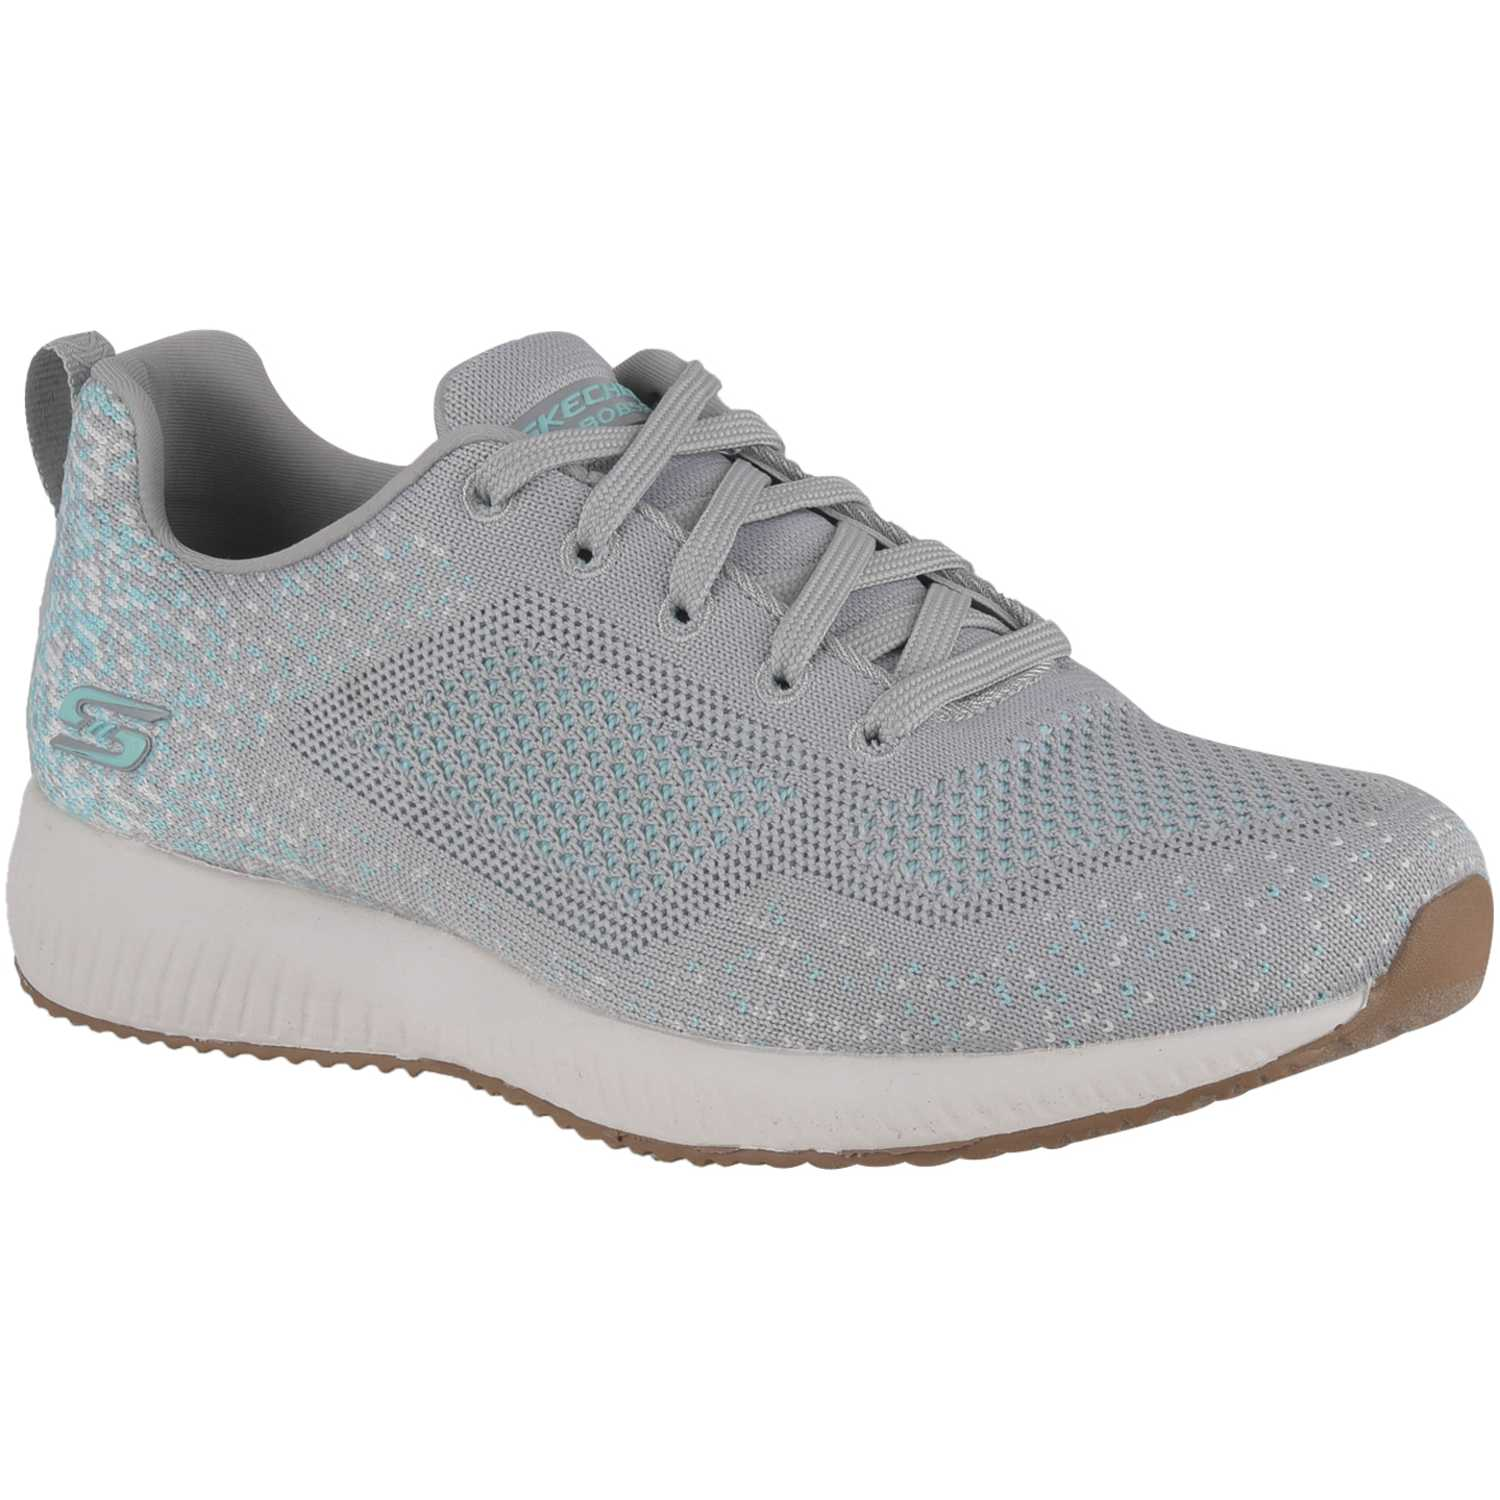 Skechers bobs squad - awesome sauce Gris / verde Walking